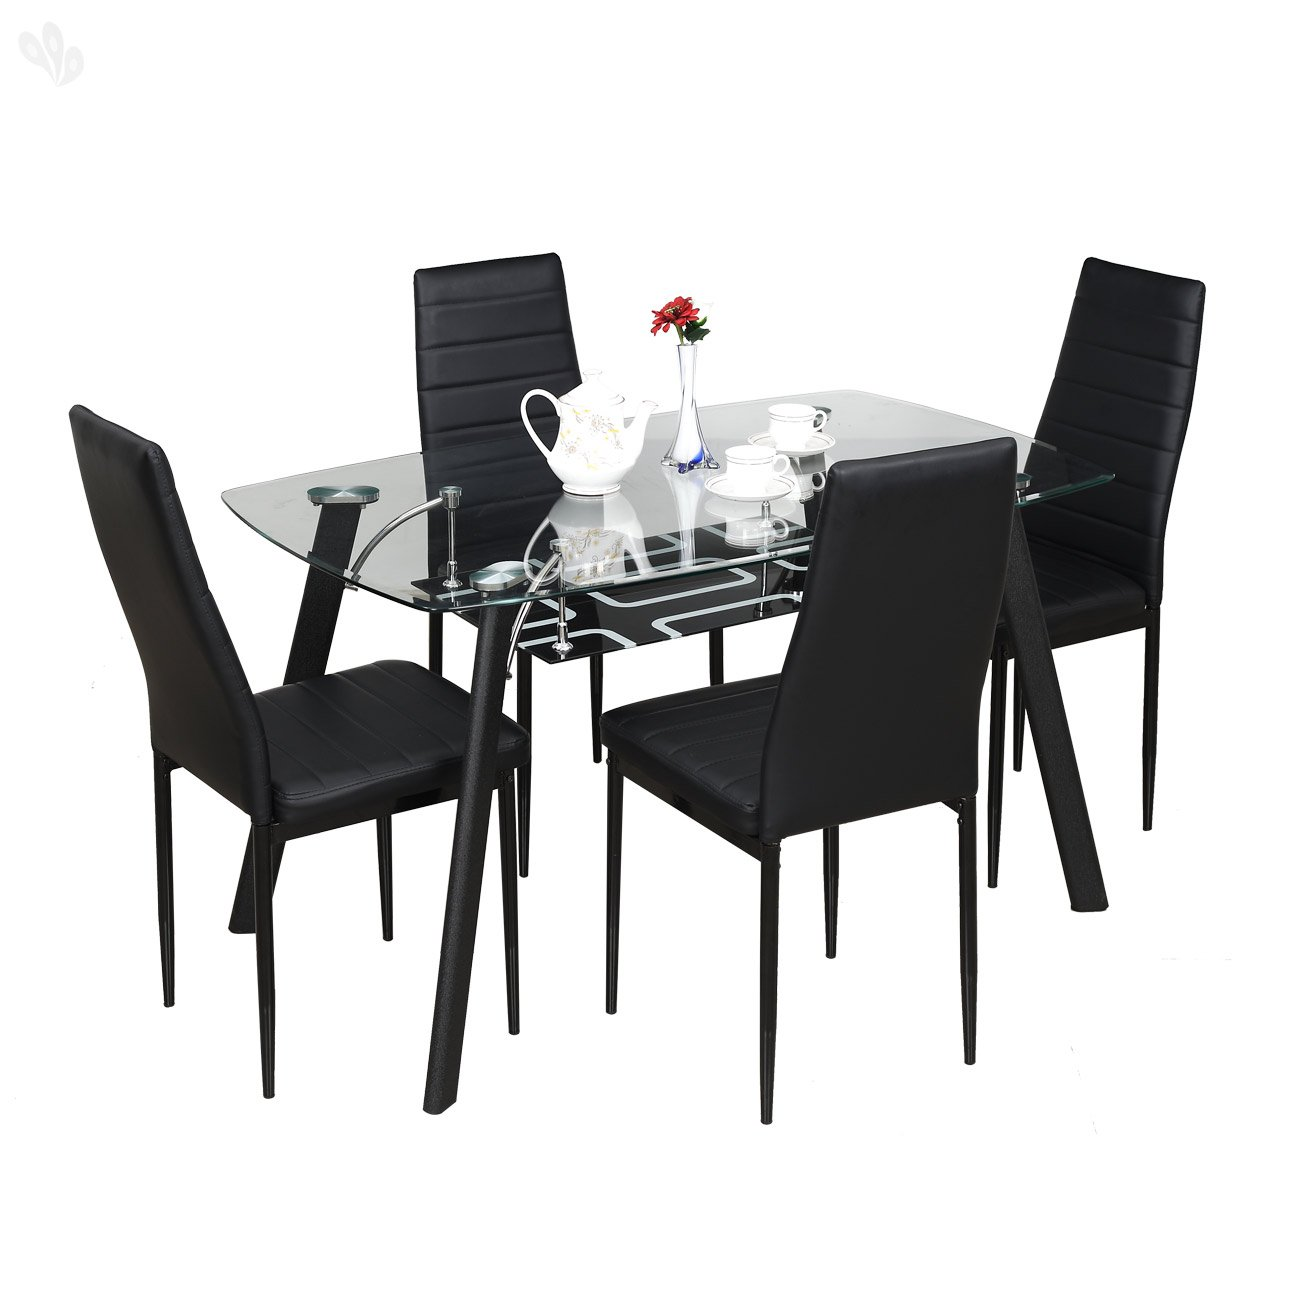 royal oak milan four seater dining table set black where can i buy